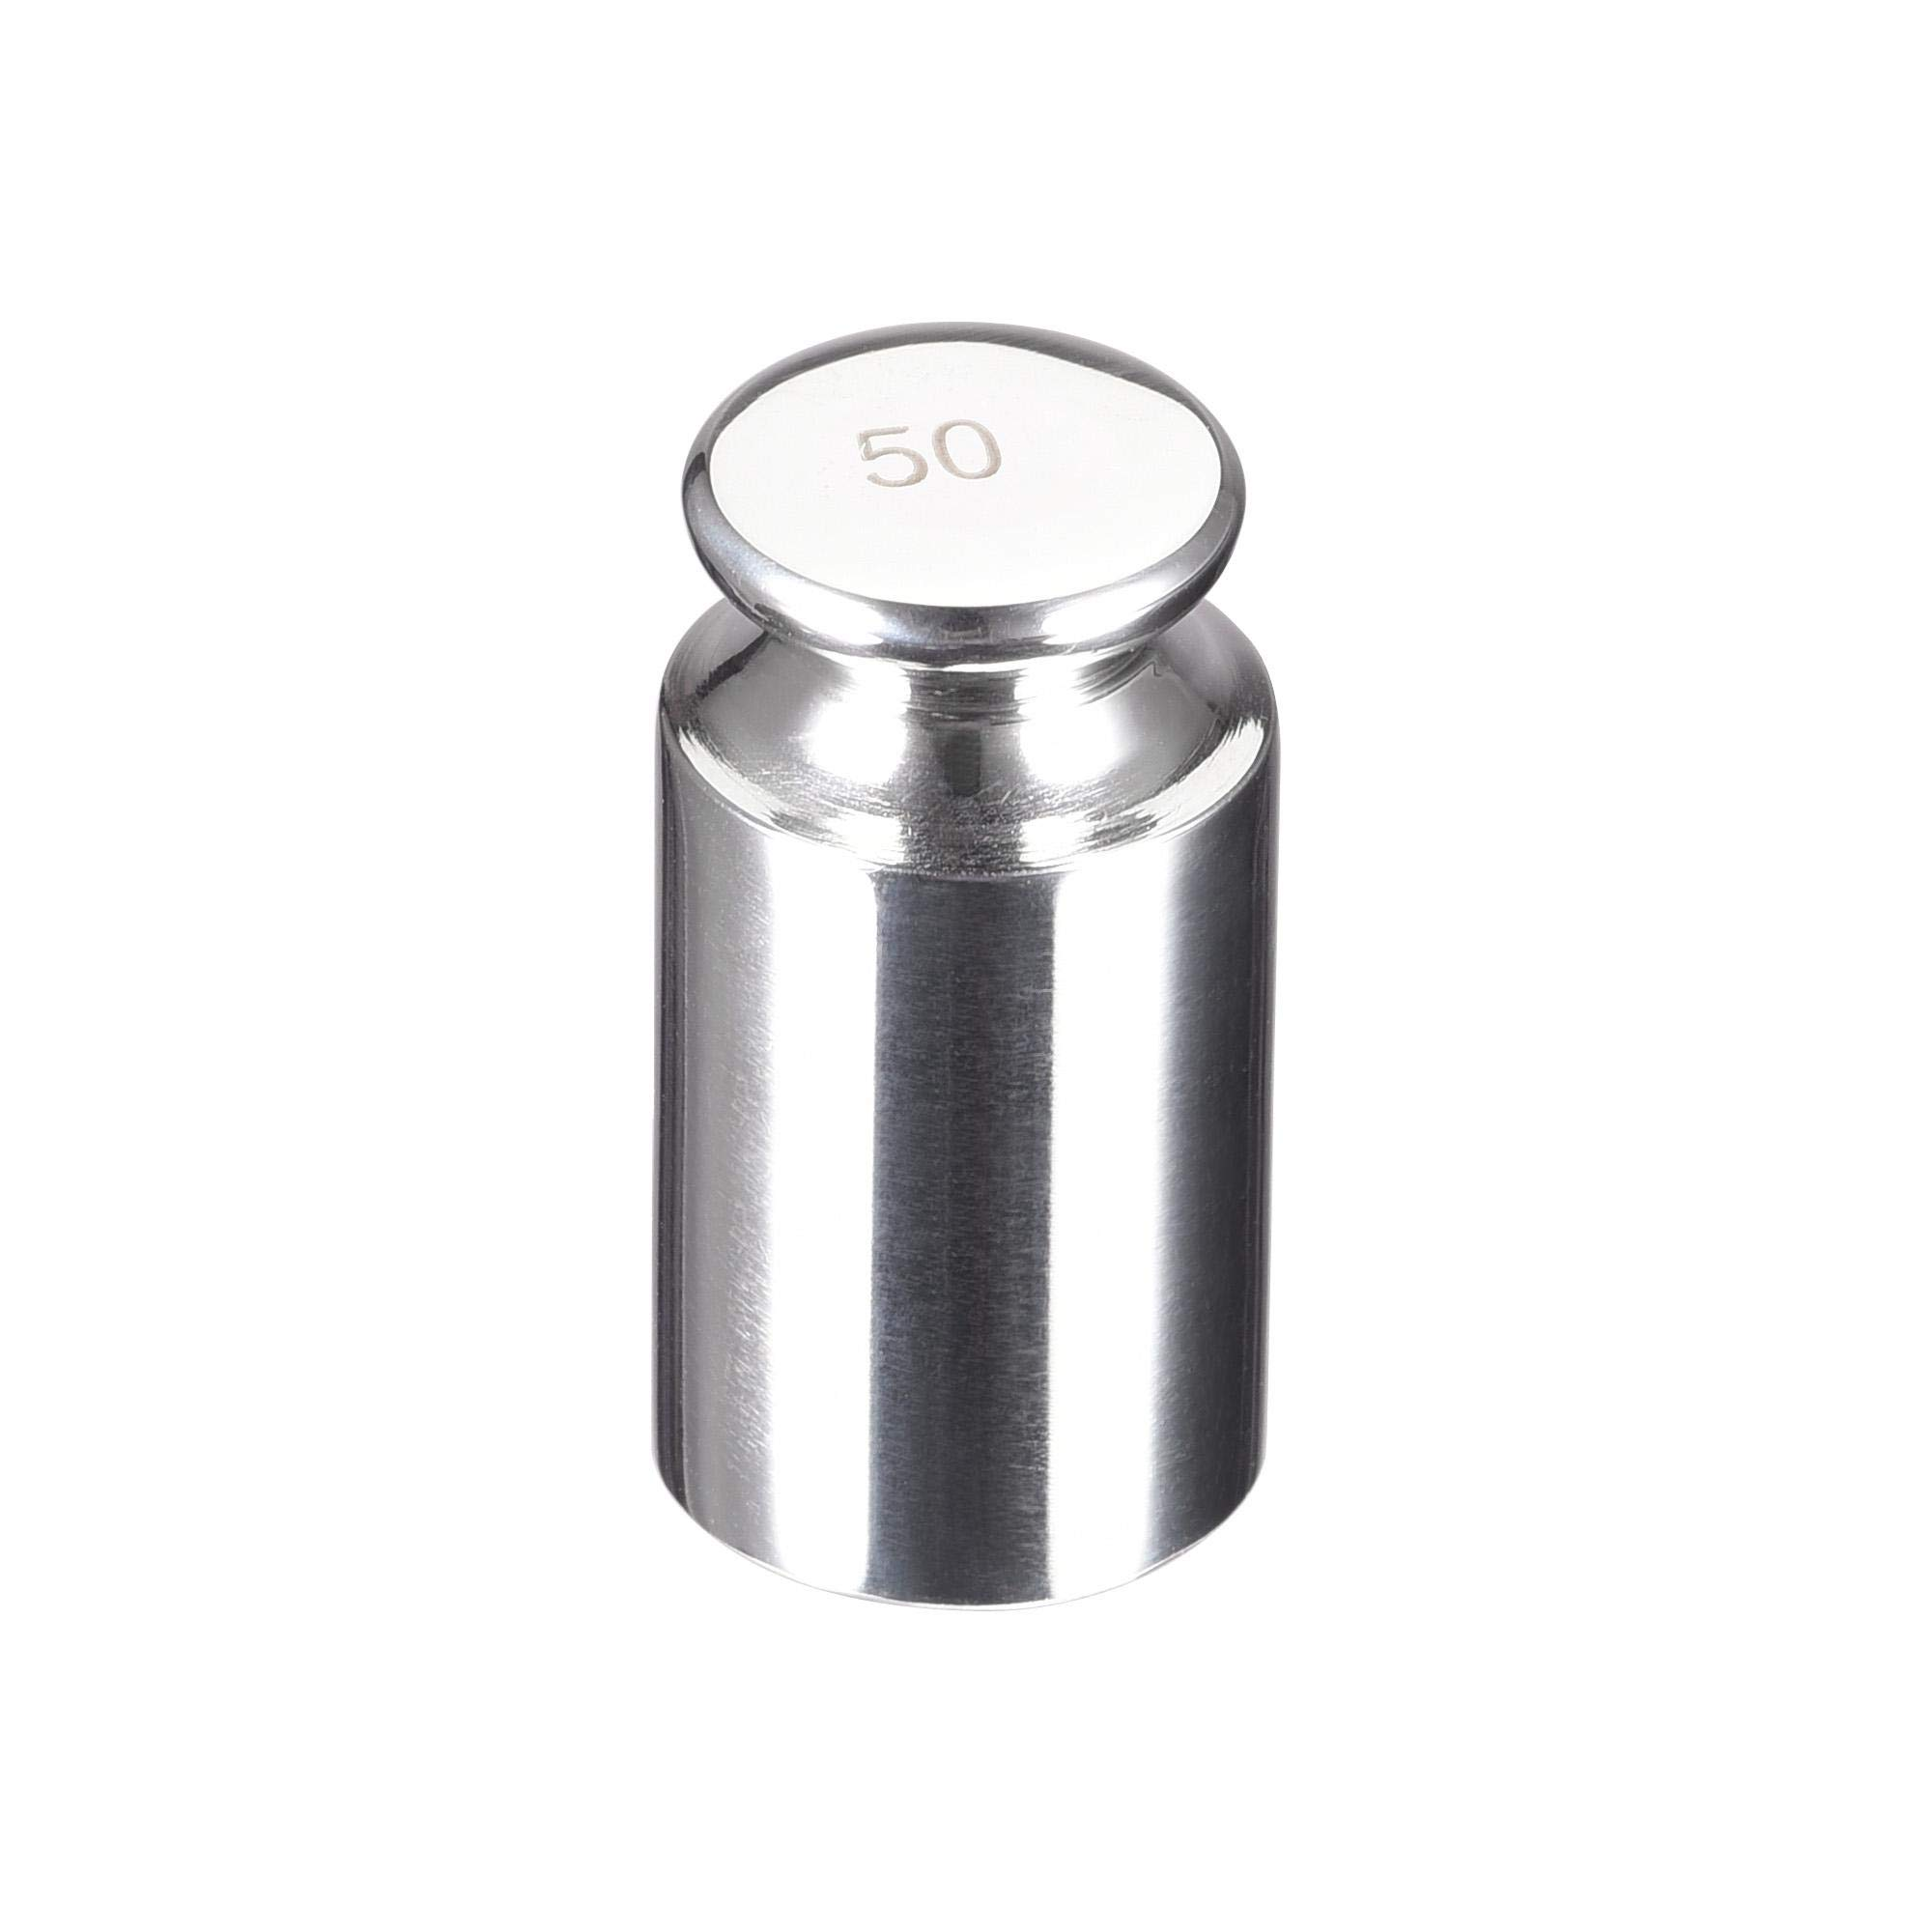 uxcell Gram Calibration Weight 50g F1 Precision Stainless Steel for Digital Balance Scales